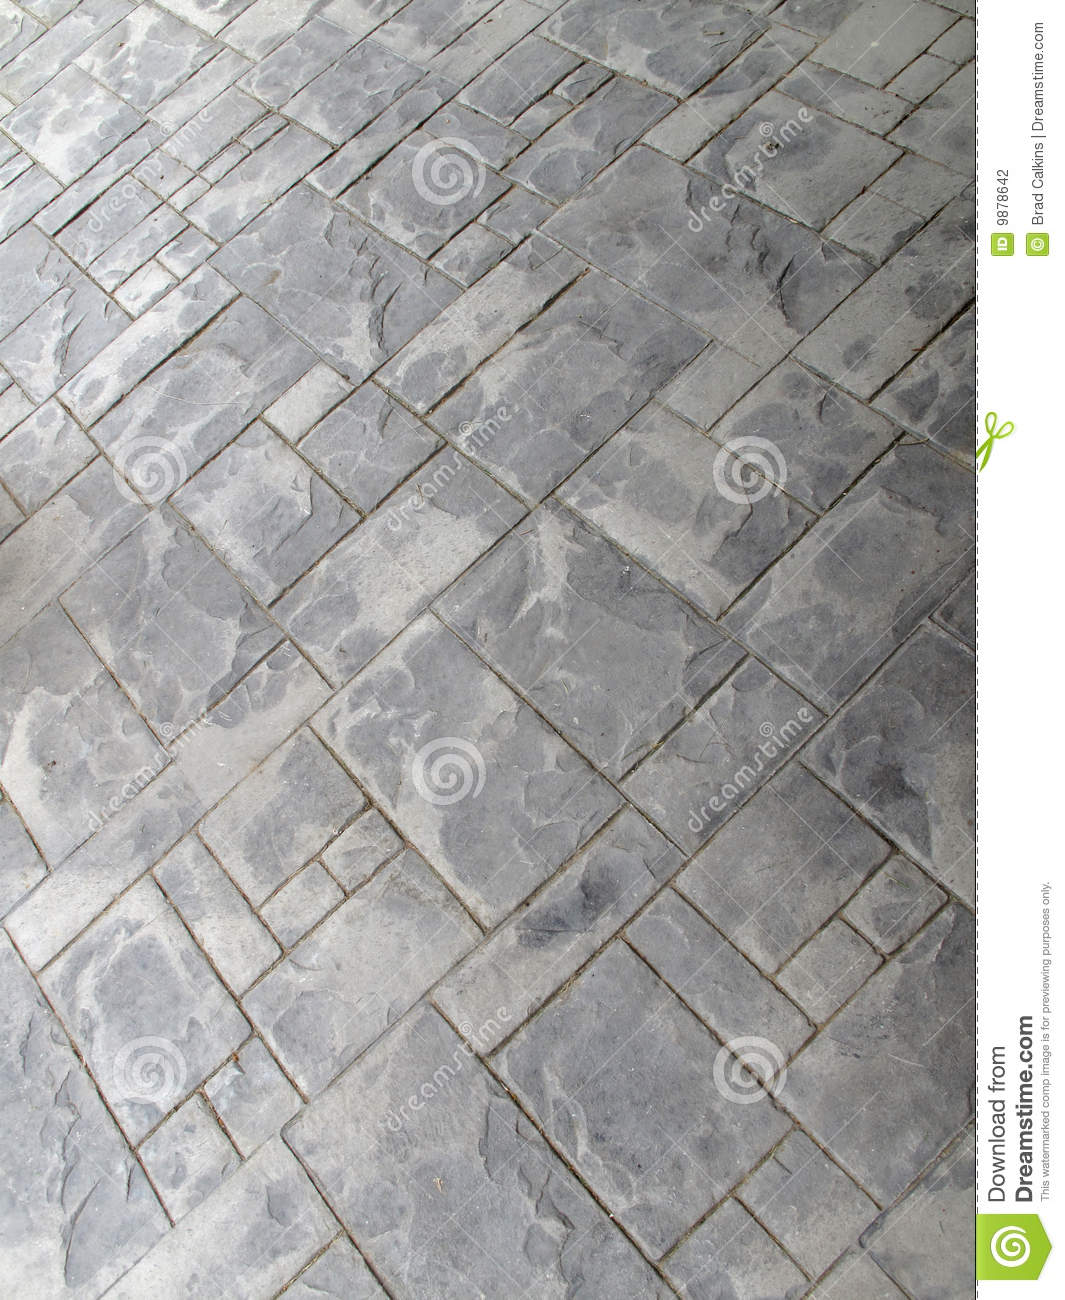 Slate Tile Stock Photo Image Of Construction Abstract